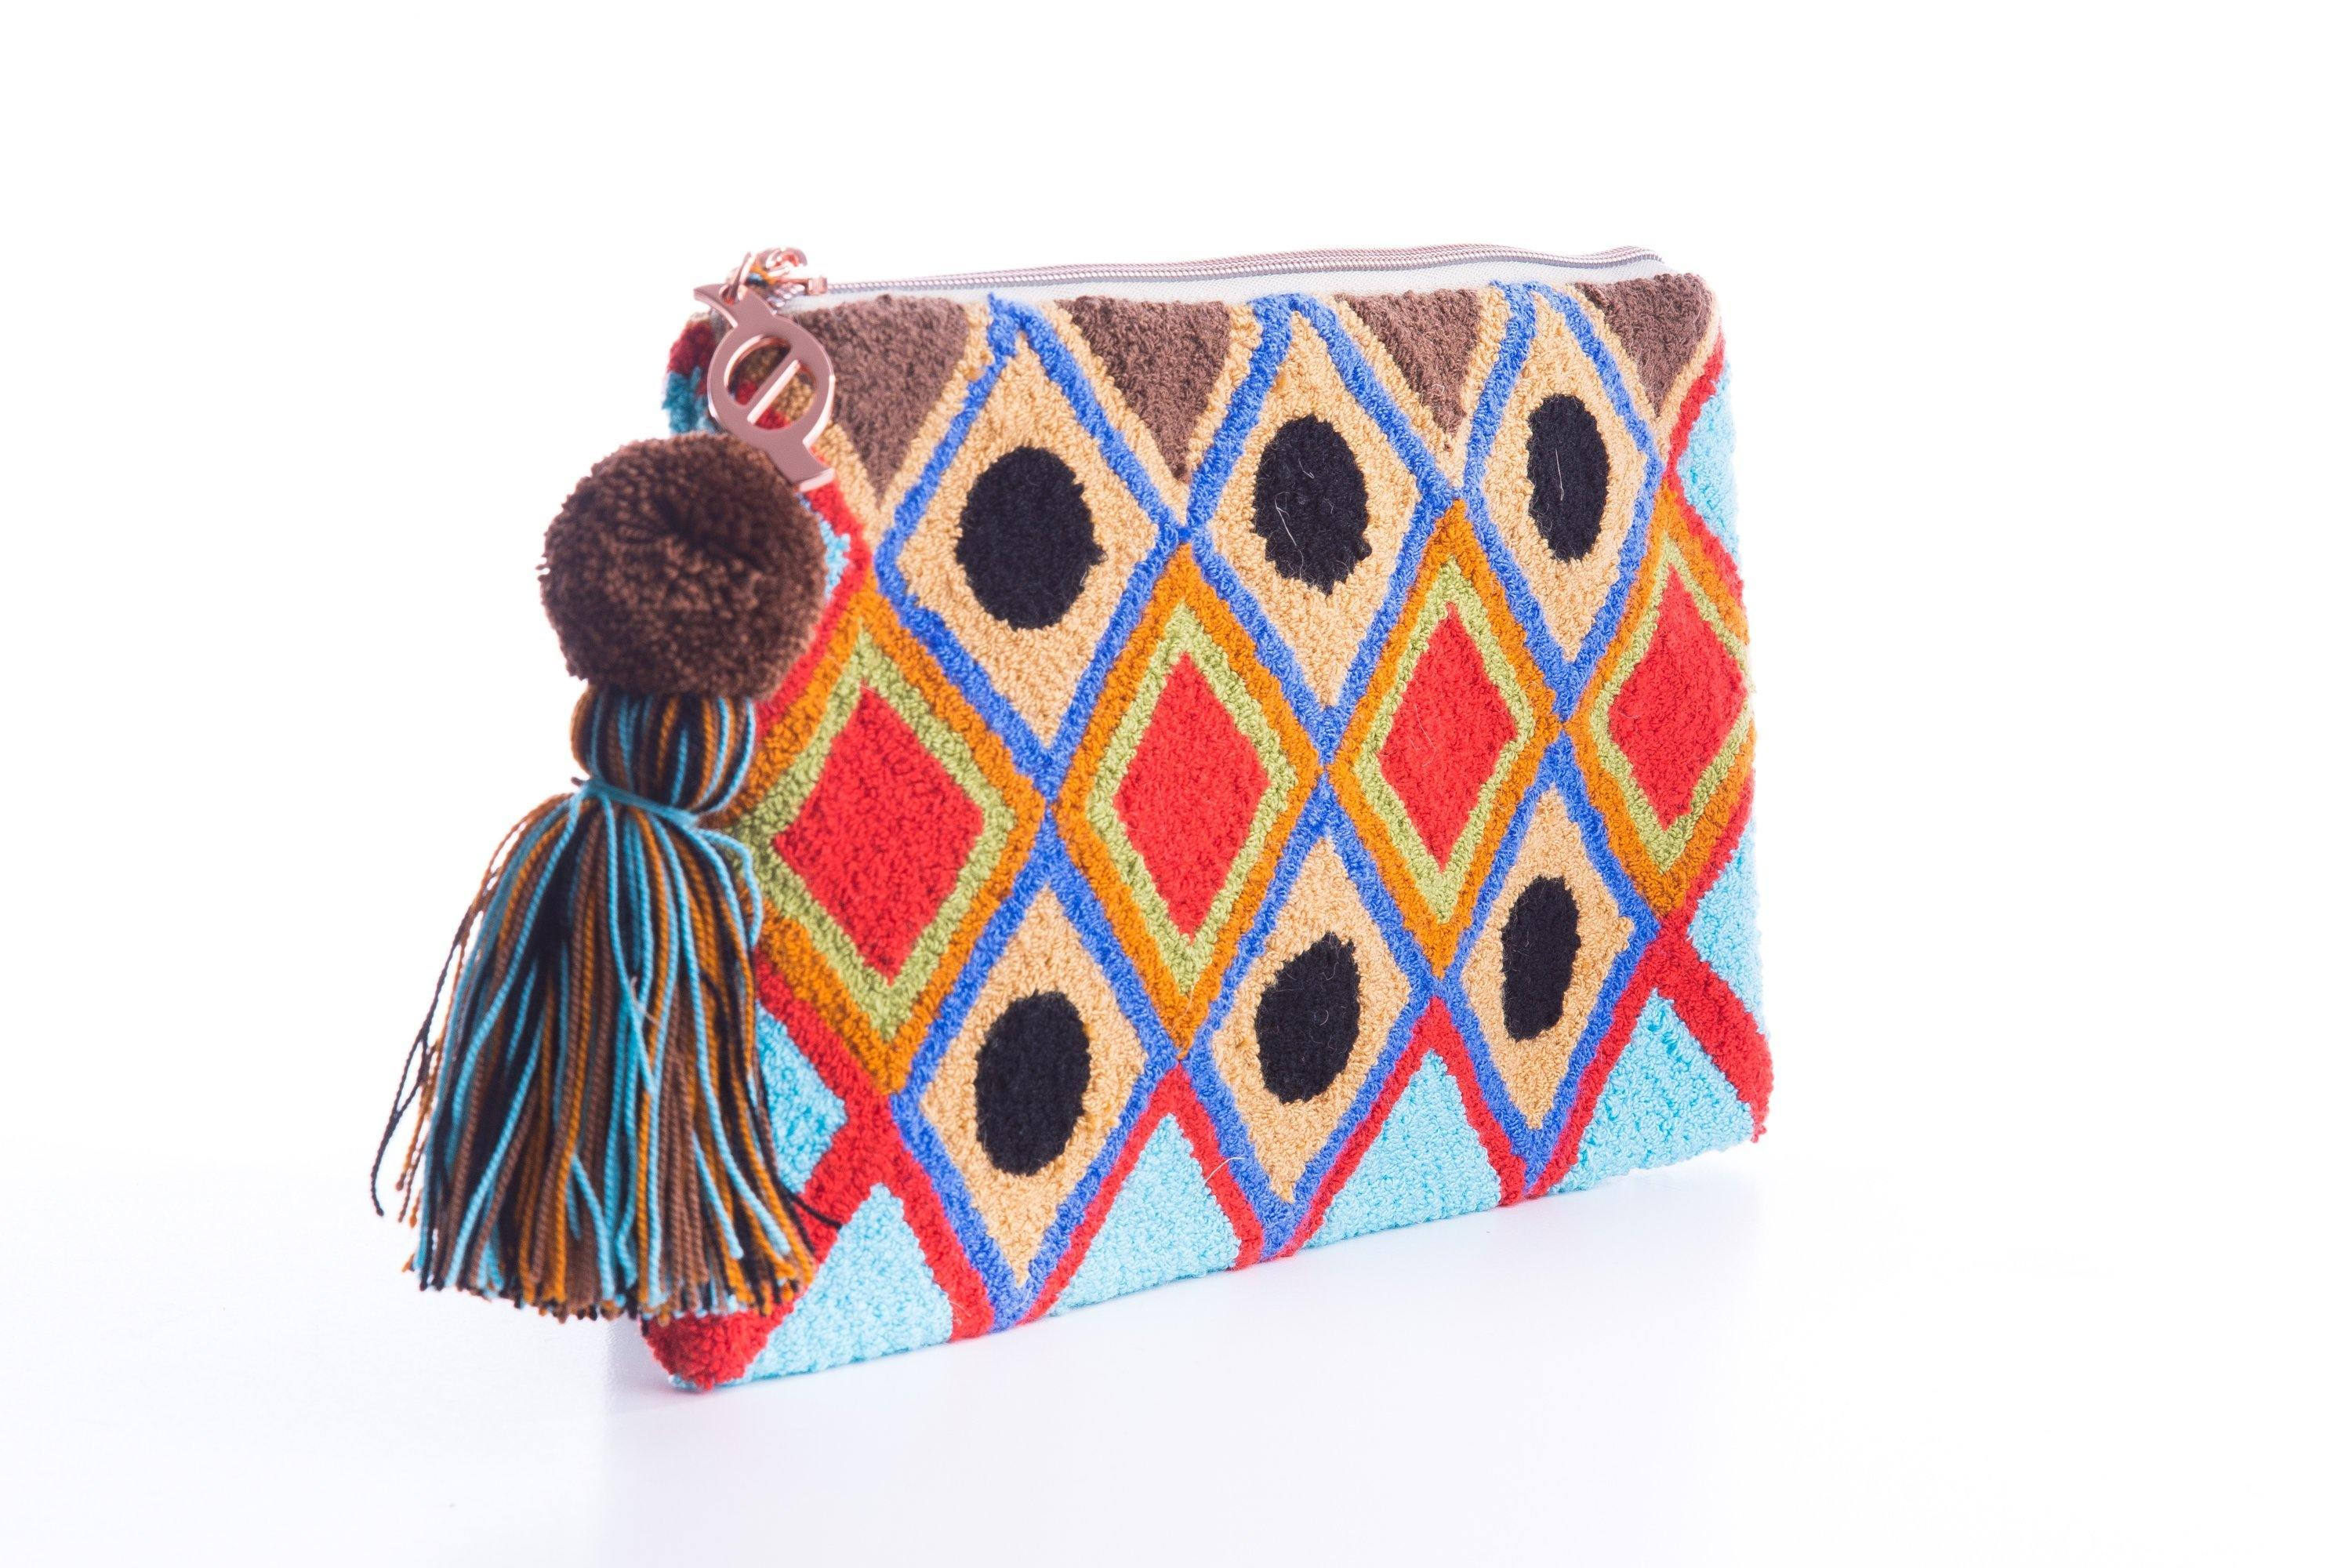 natural-rough-bag-handrafted-wayuu-cotton-colors-artisanal